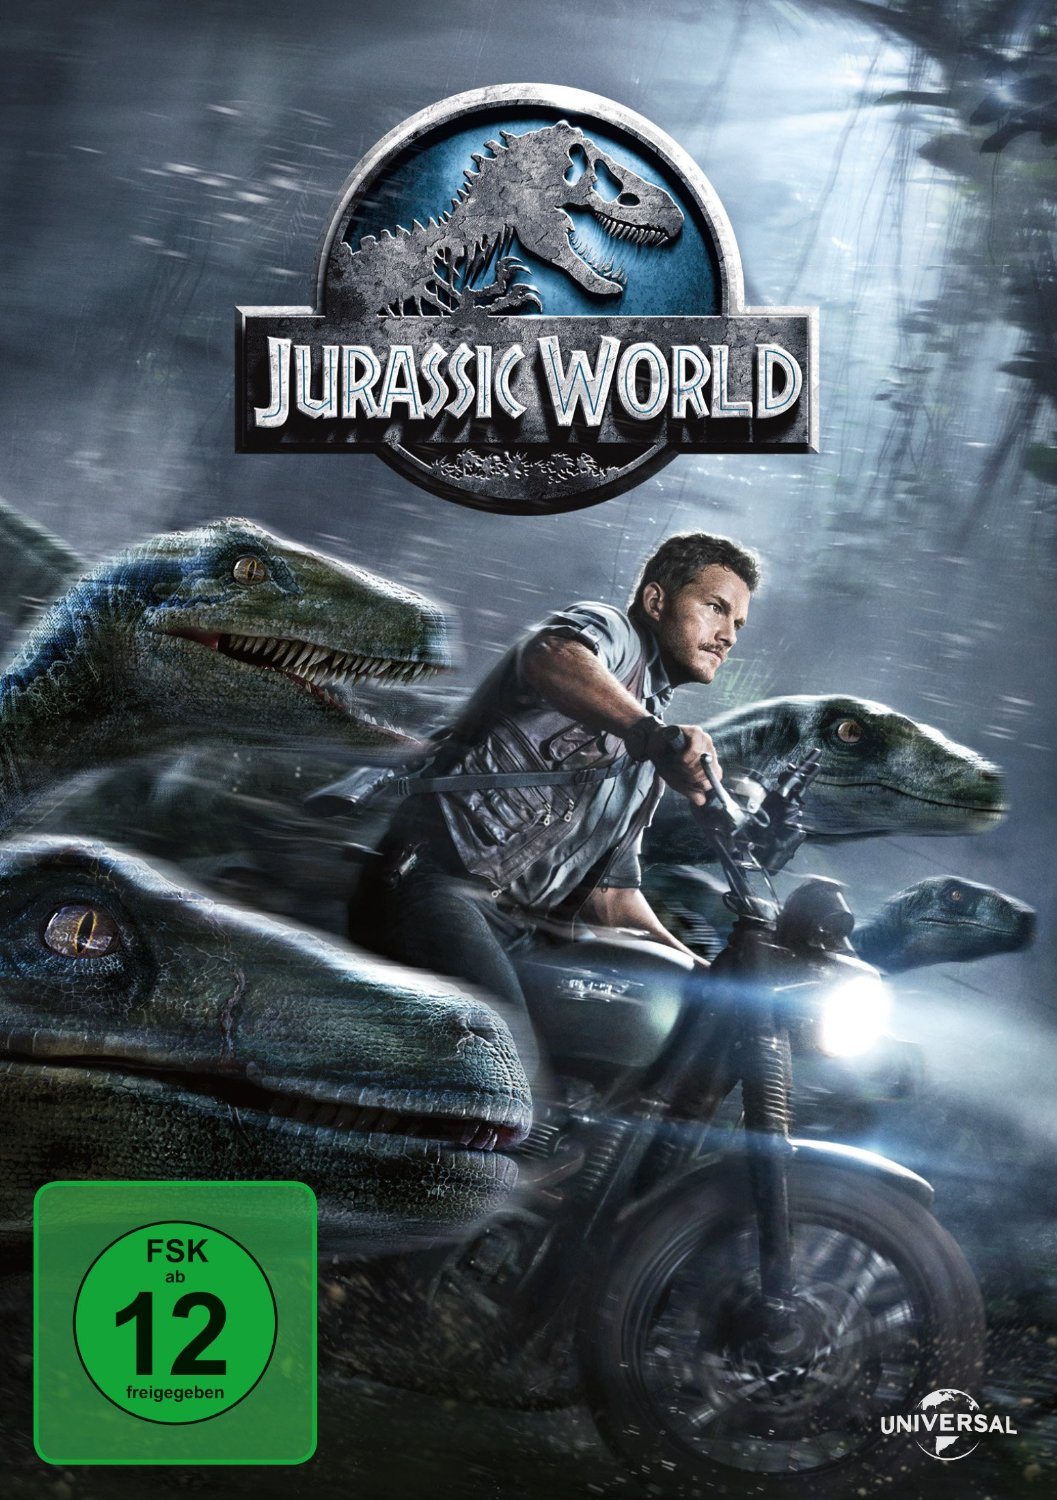 DVD-Cover von Jurassic World